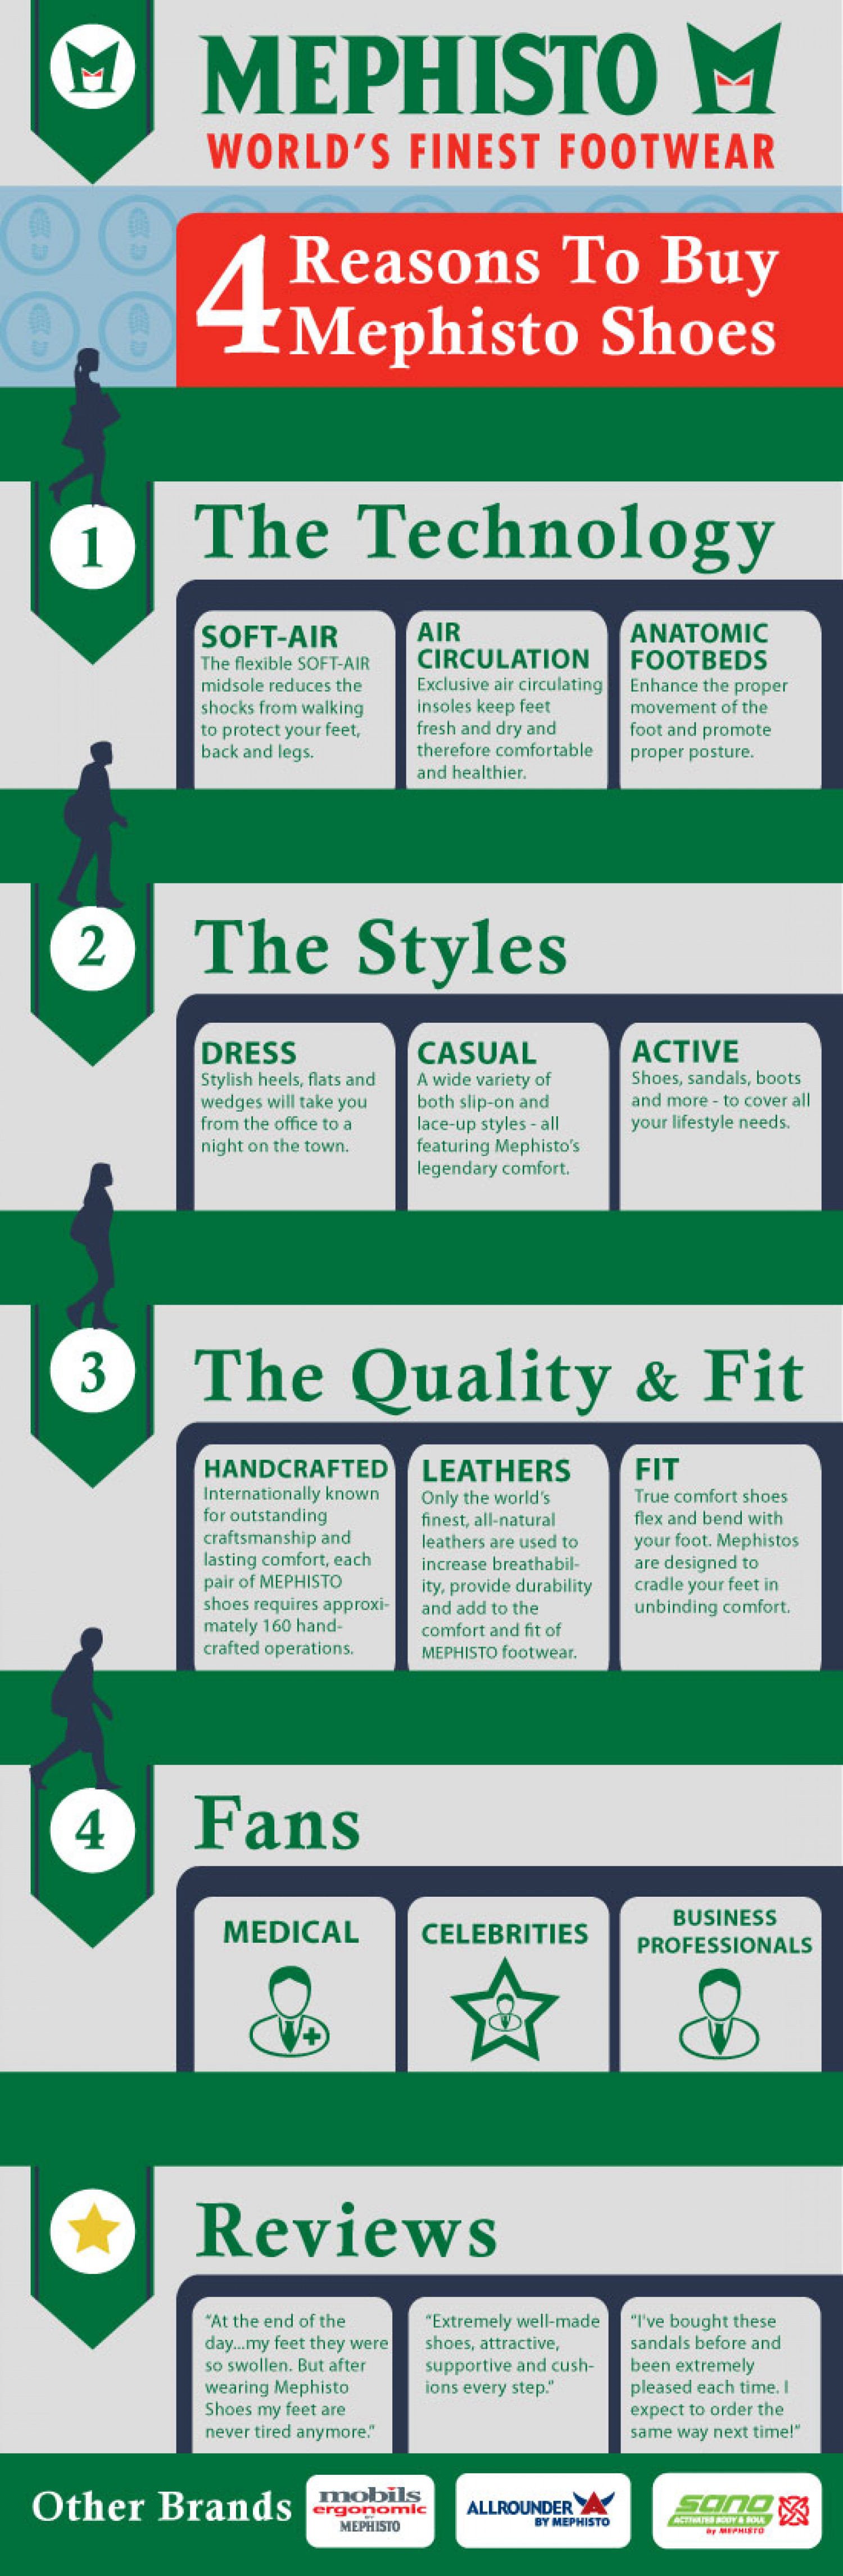 Mephisto Shoes Infographic